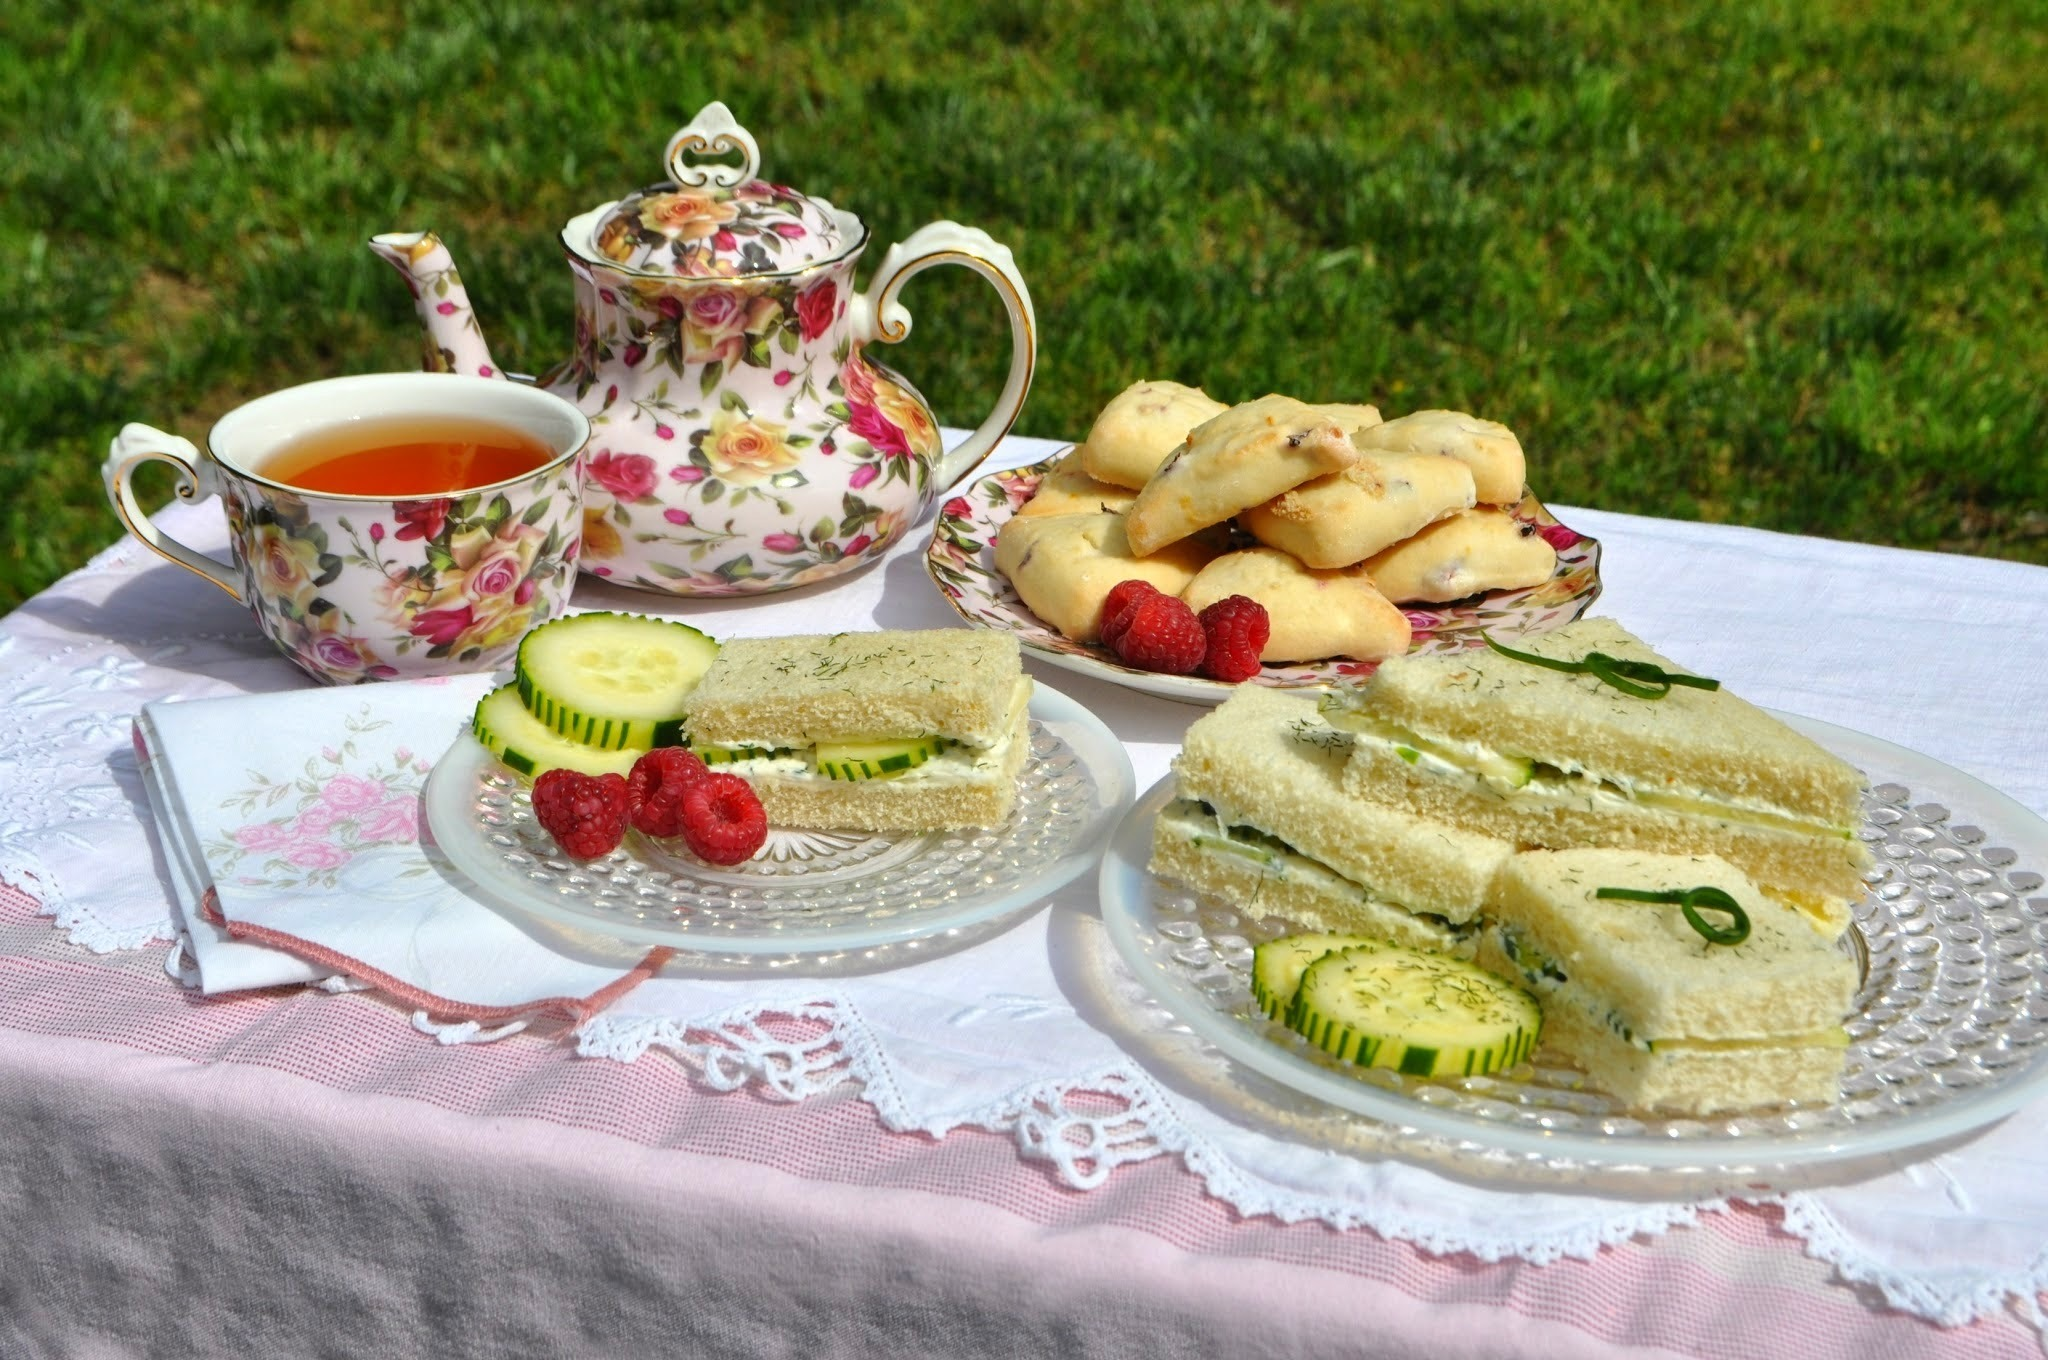 Welcoming Princess Cambridge with Cucumber Sandwiches and Tea